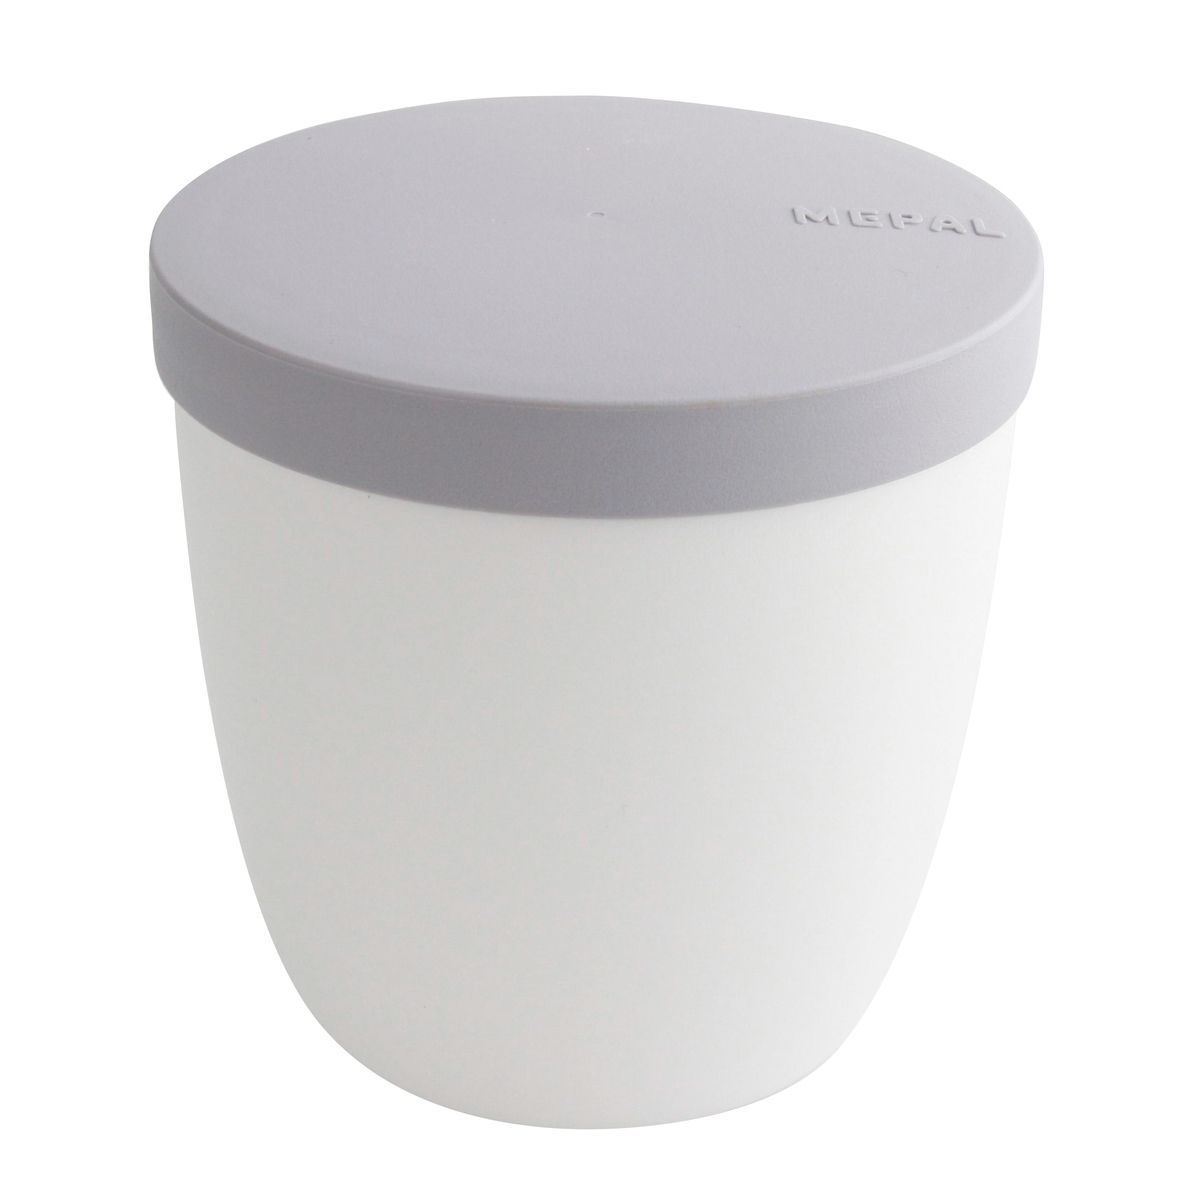 Snack pot ellipse blanc 500ml - Mepal